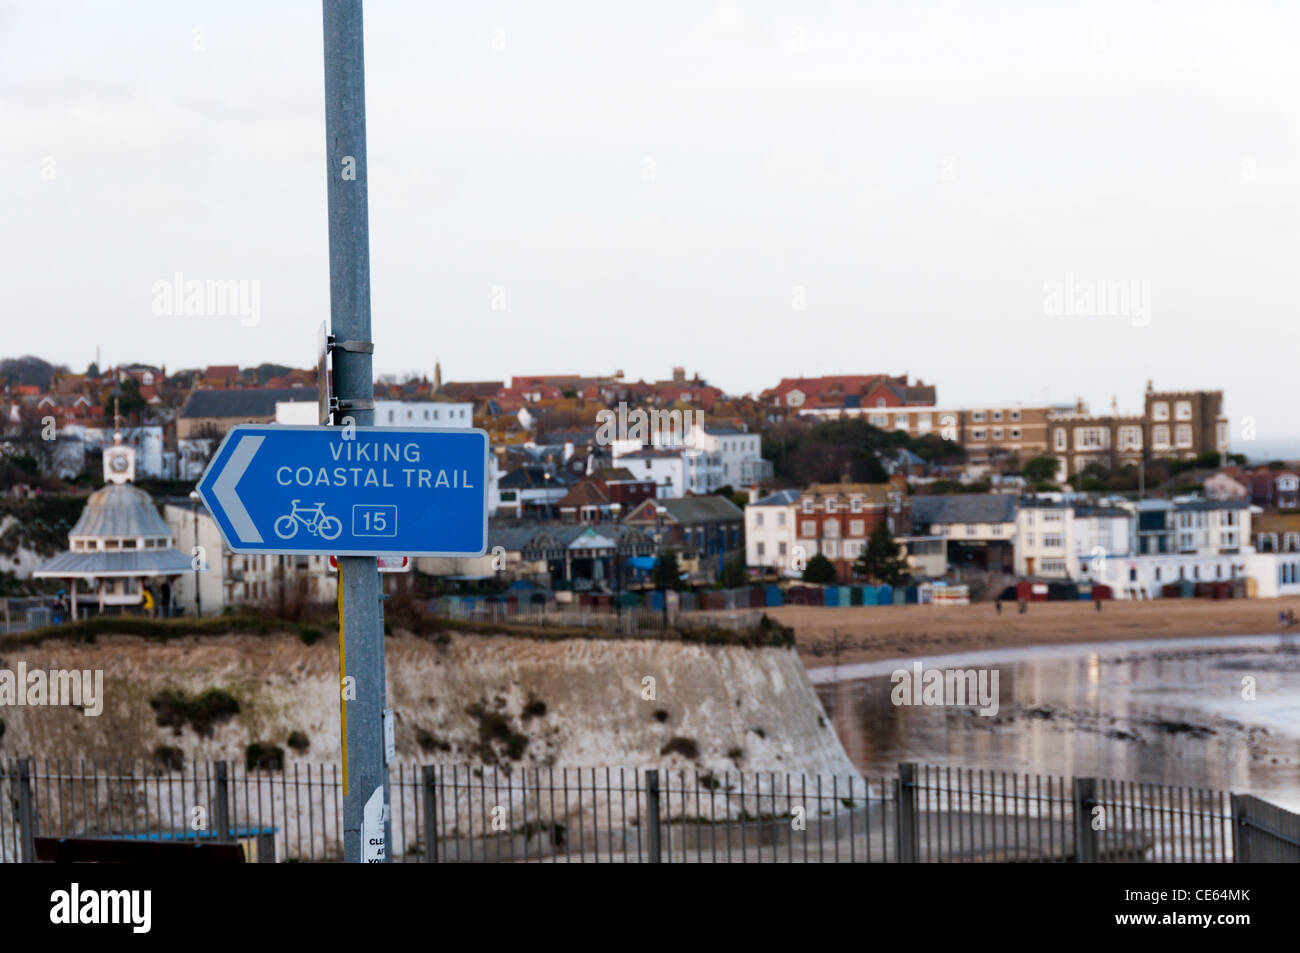 A sign for the viking Coastal Trail cycle route overlooking the seafront at Broadstairs, Kent - Stock Image